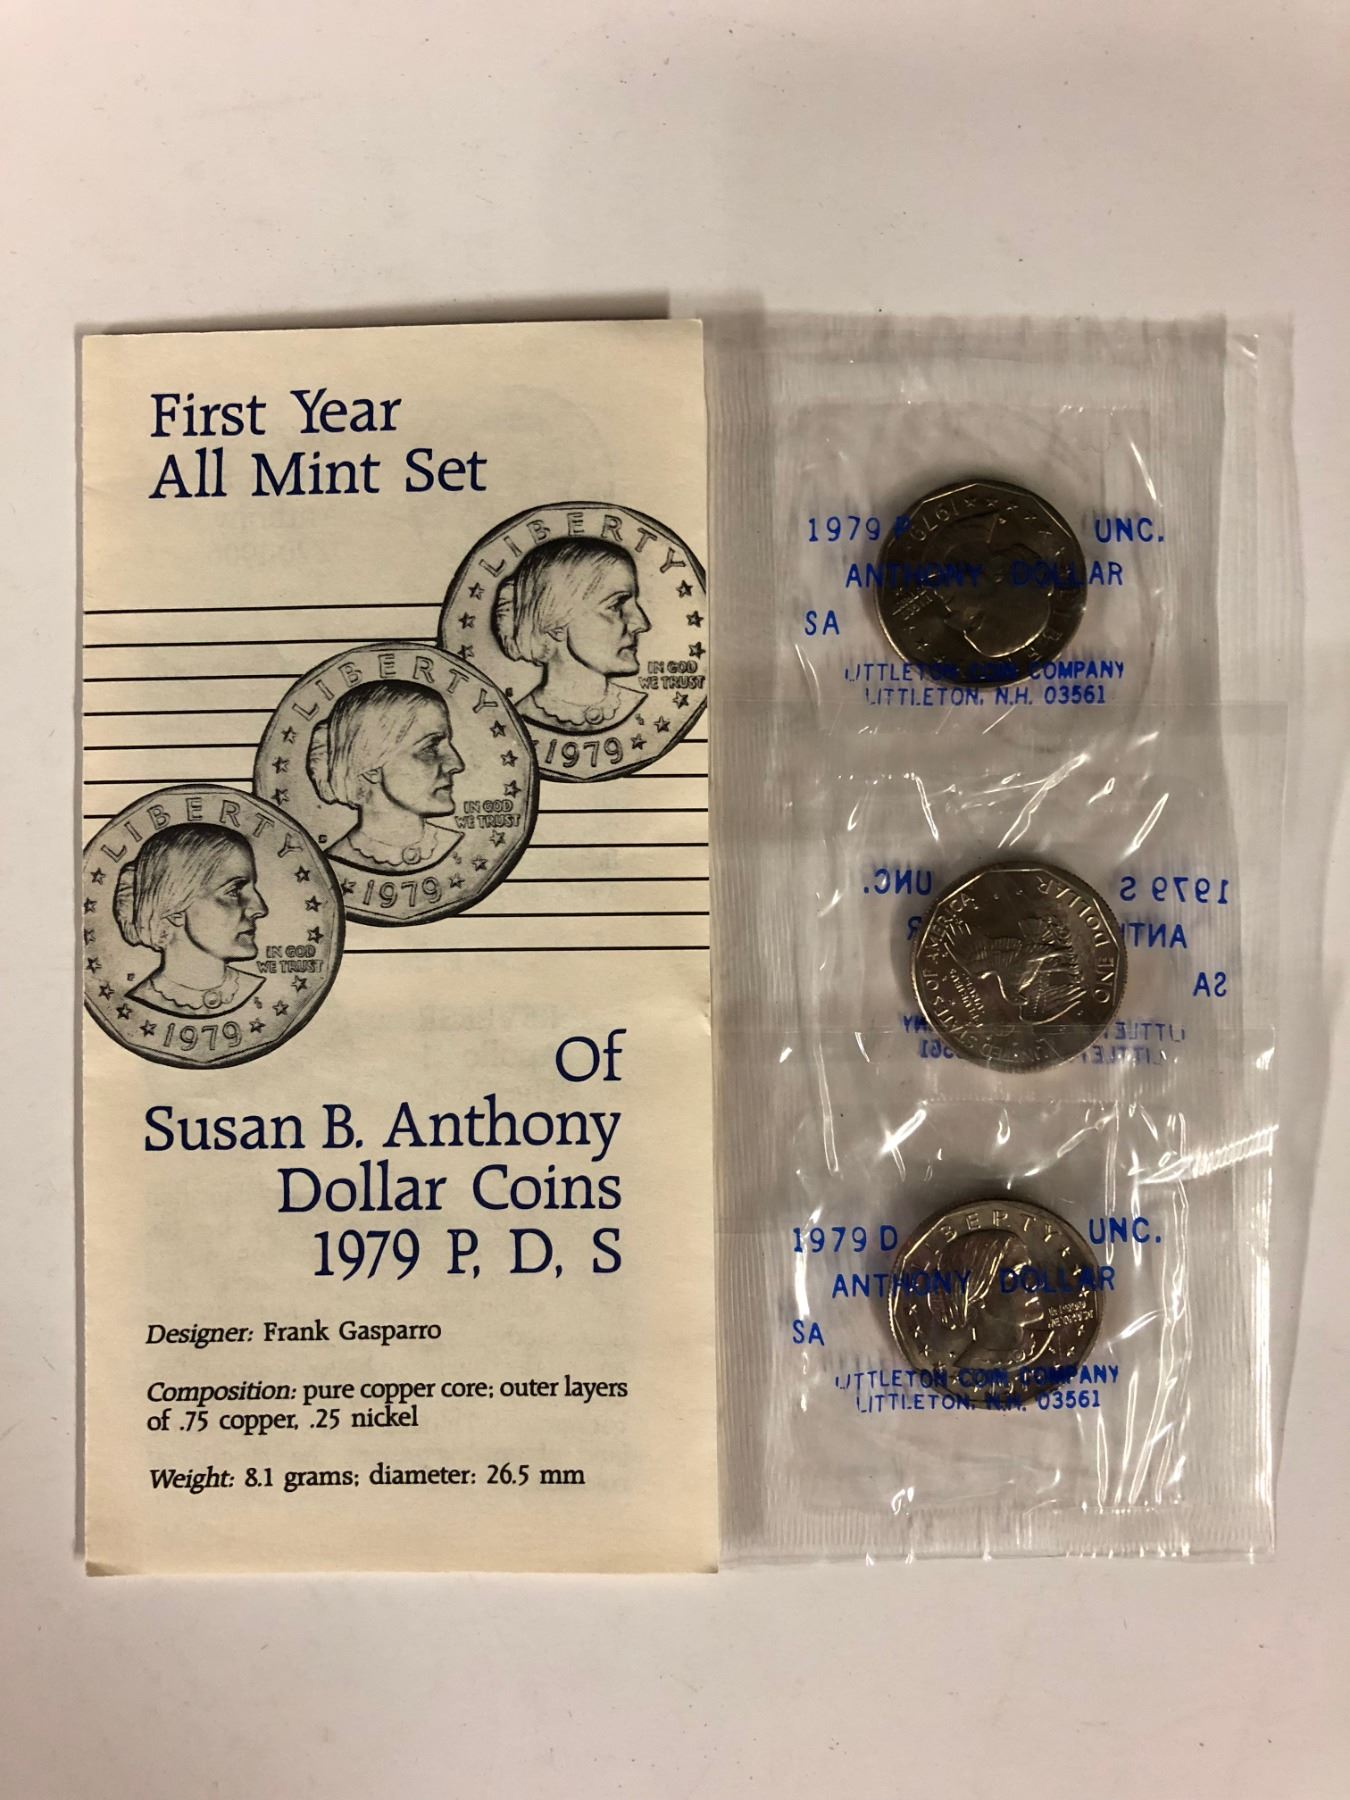 FIRST YEAR ALL MINT SET OF SUSAN B  ANTHONY DOLLAR COINS 1979 P, D, S